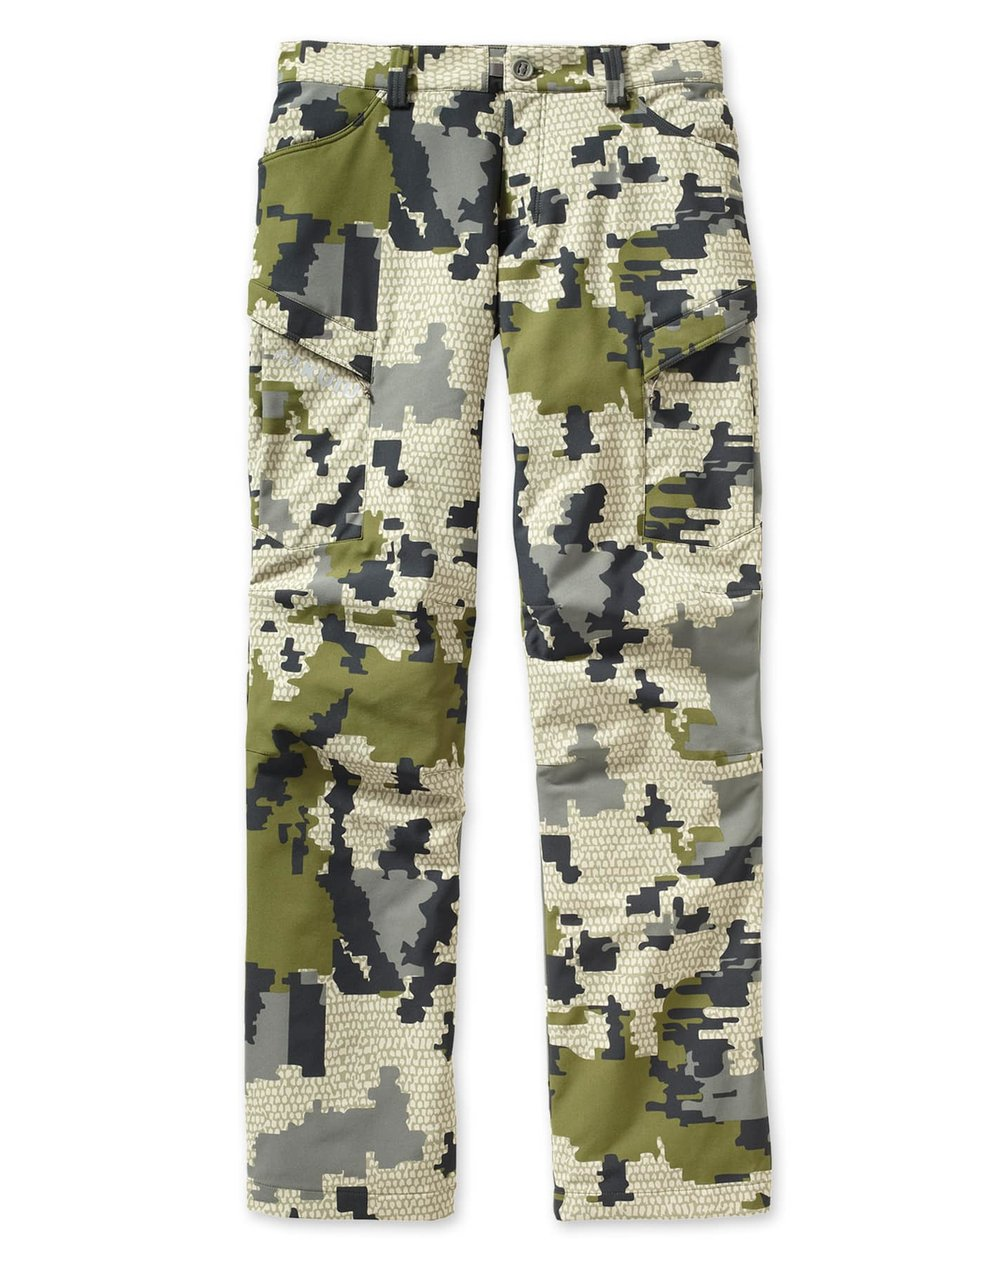 53953499cadff The Best Hunting Pants for All Seasons in 2018 — Outdoorsman